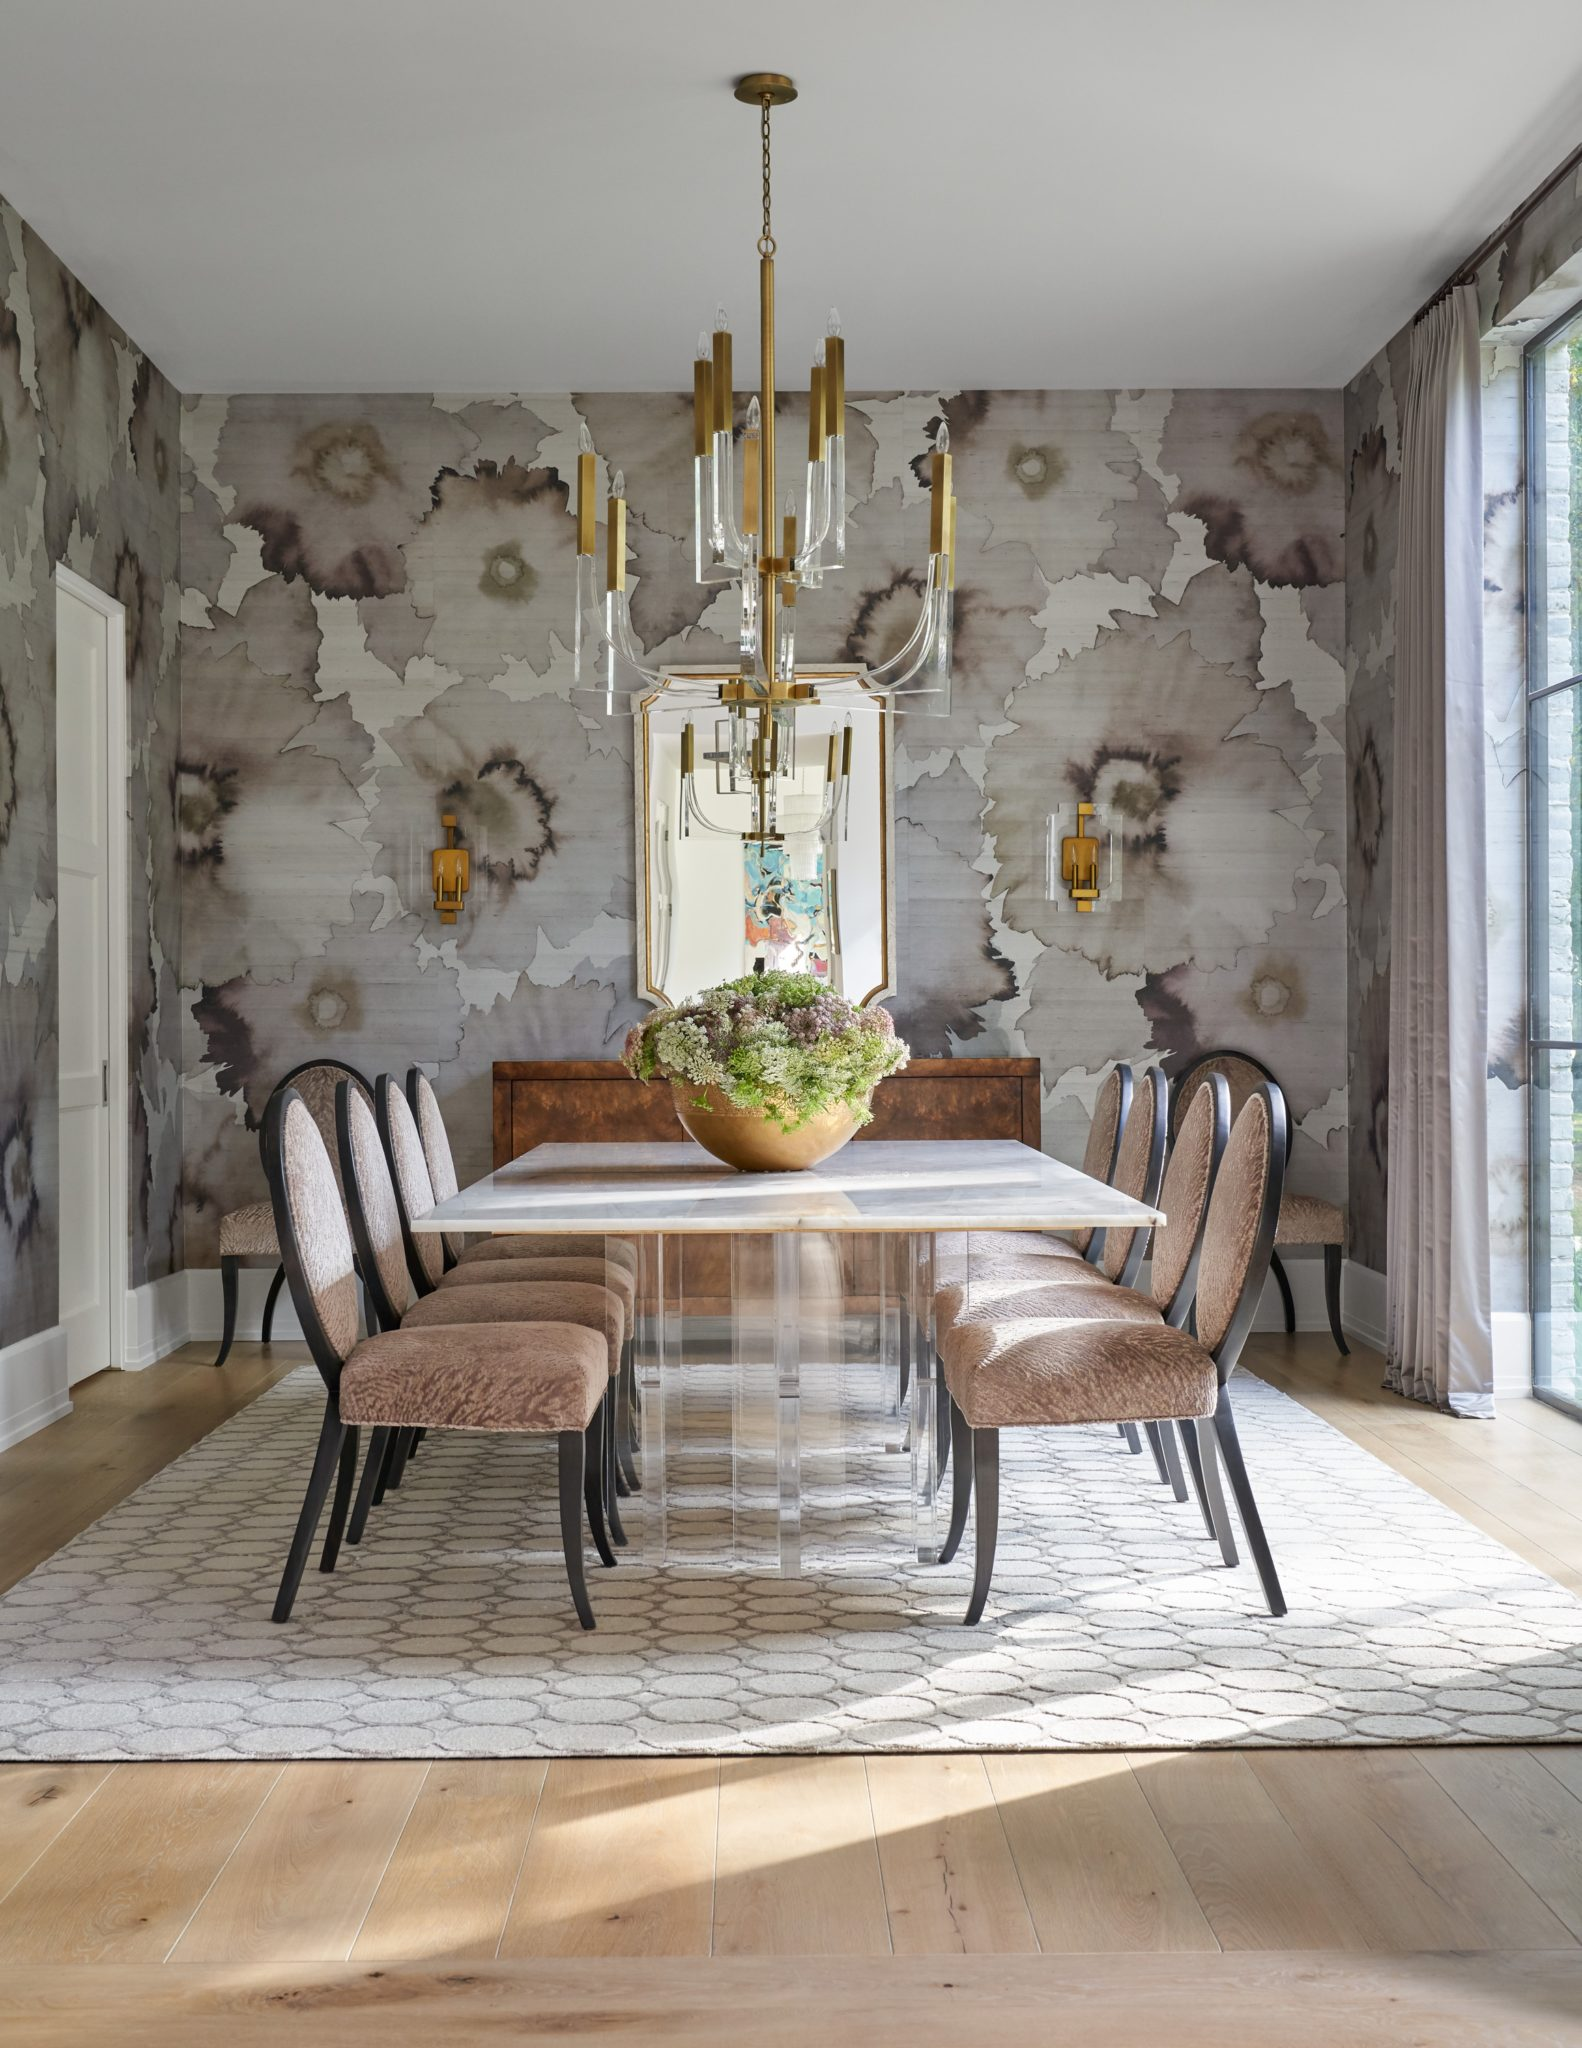 Dining Room Full View by Talbot Cooley